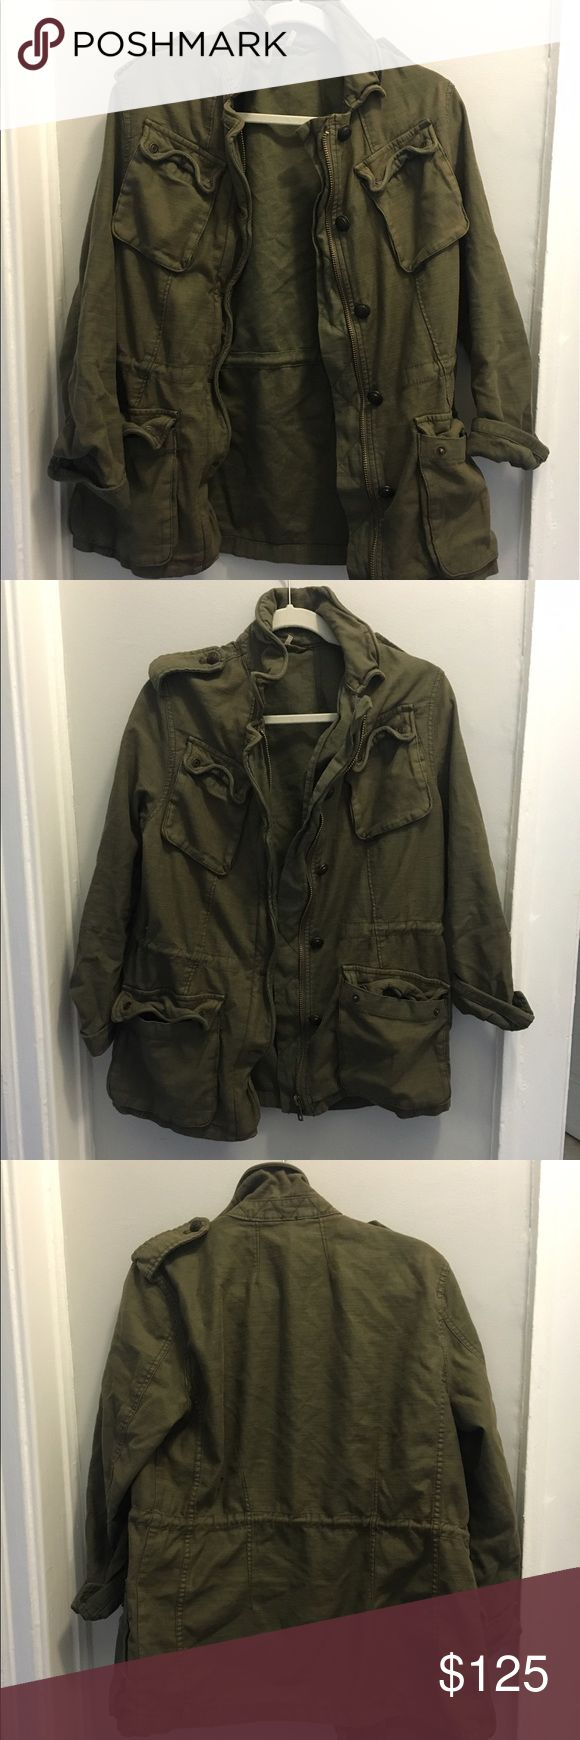 Free People Military Green Jacket Free People military style olive green jacket. Barely worn, in perfect condition! Free People Jackets & Coats